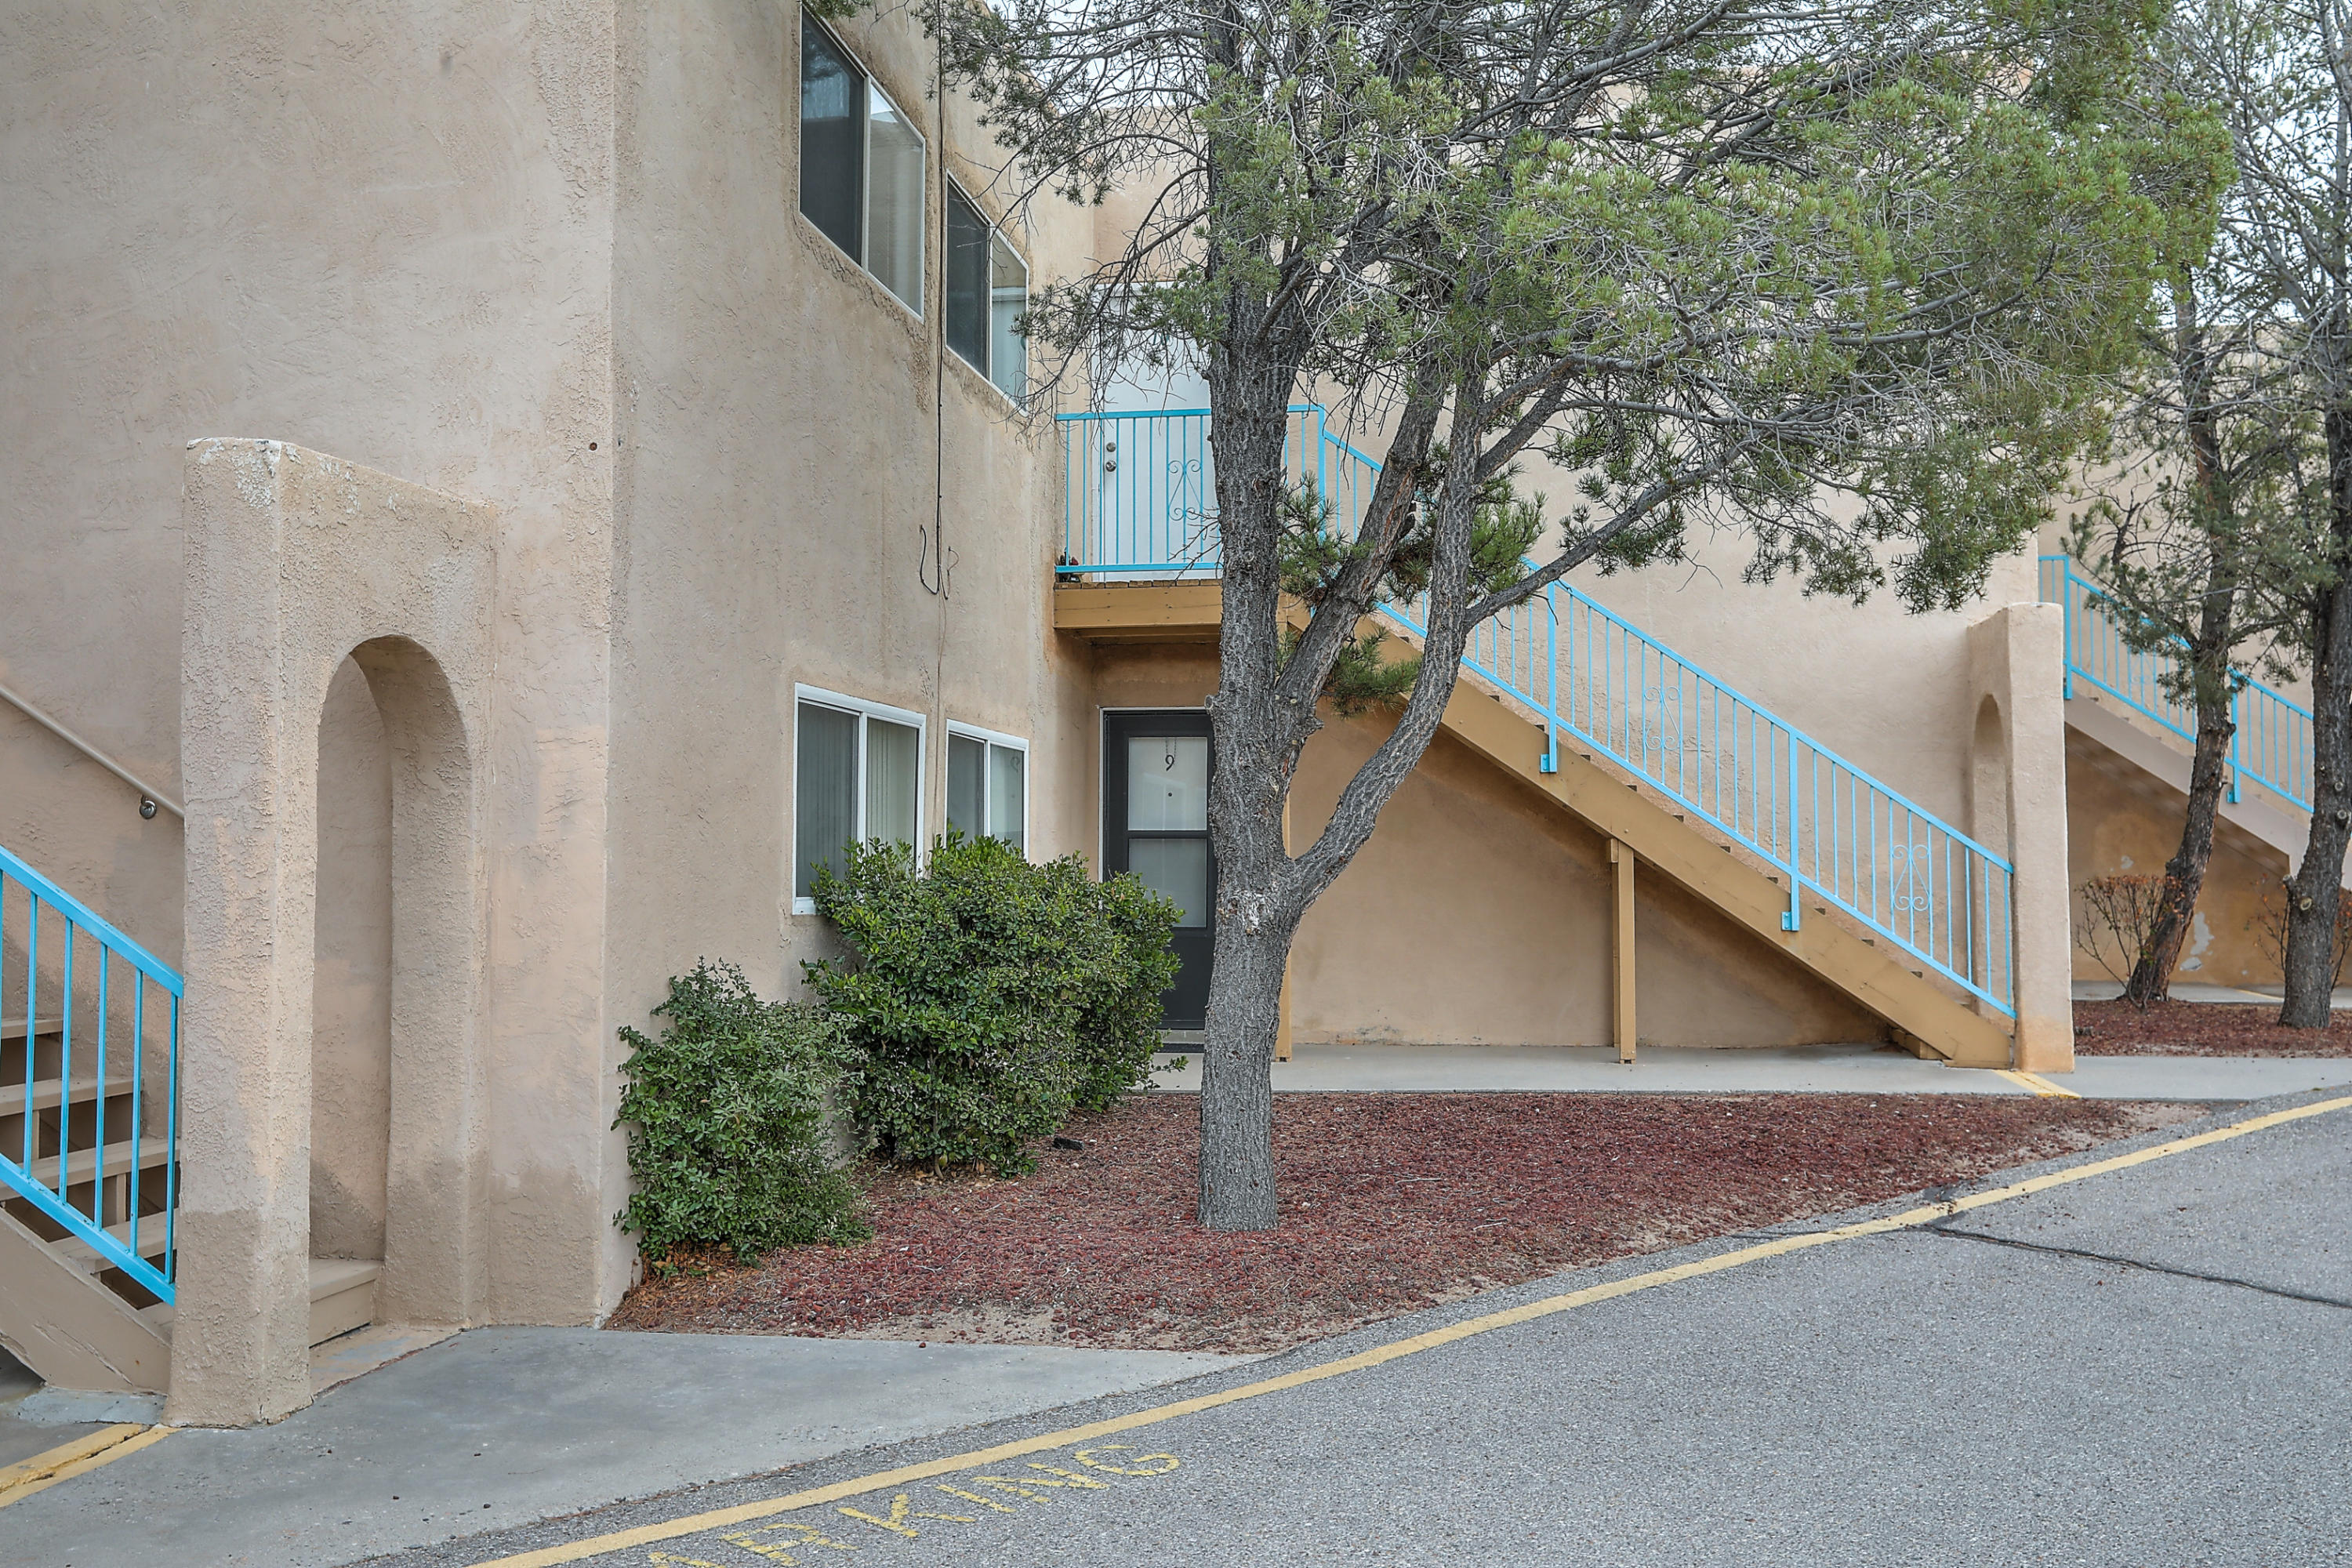 Wonderful opportunity for a condo located in a golf course community - the classic Paradise Hills Country Club area.  The unit is single story, downstairs unit that opens to the common area.  The parking for this unit is located directly across from the unit, and includes a storage closet.  2 spacious bedrooms, with 2 baths.  The newly installed flooring is featured.  Refrigerated air, clean kitchen with serving area, dining area.  The wall of windows open to the covered patio area.  The HOA pays some utilities and common areas.Call your REALTOR today!